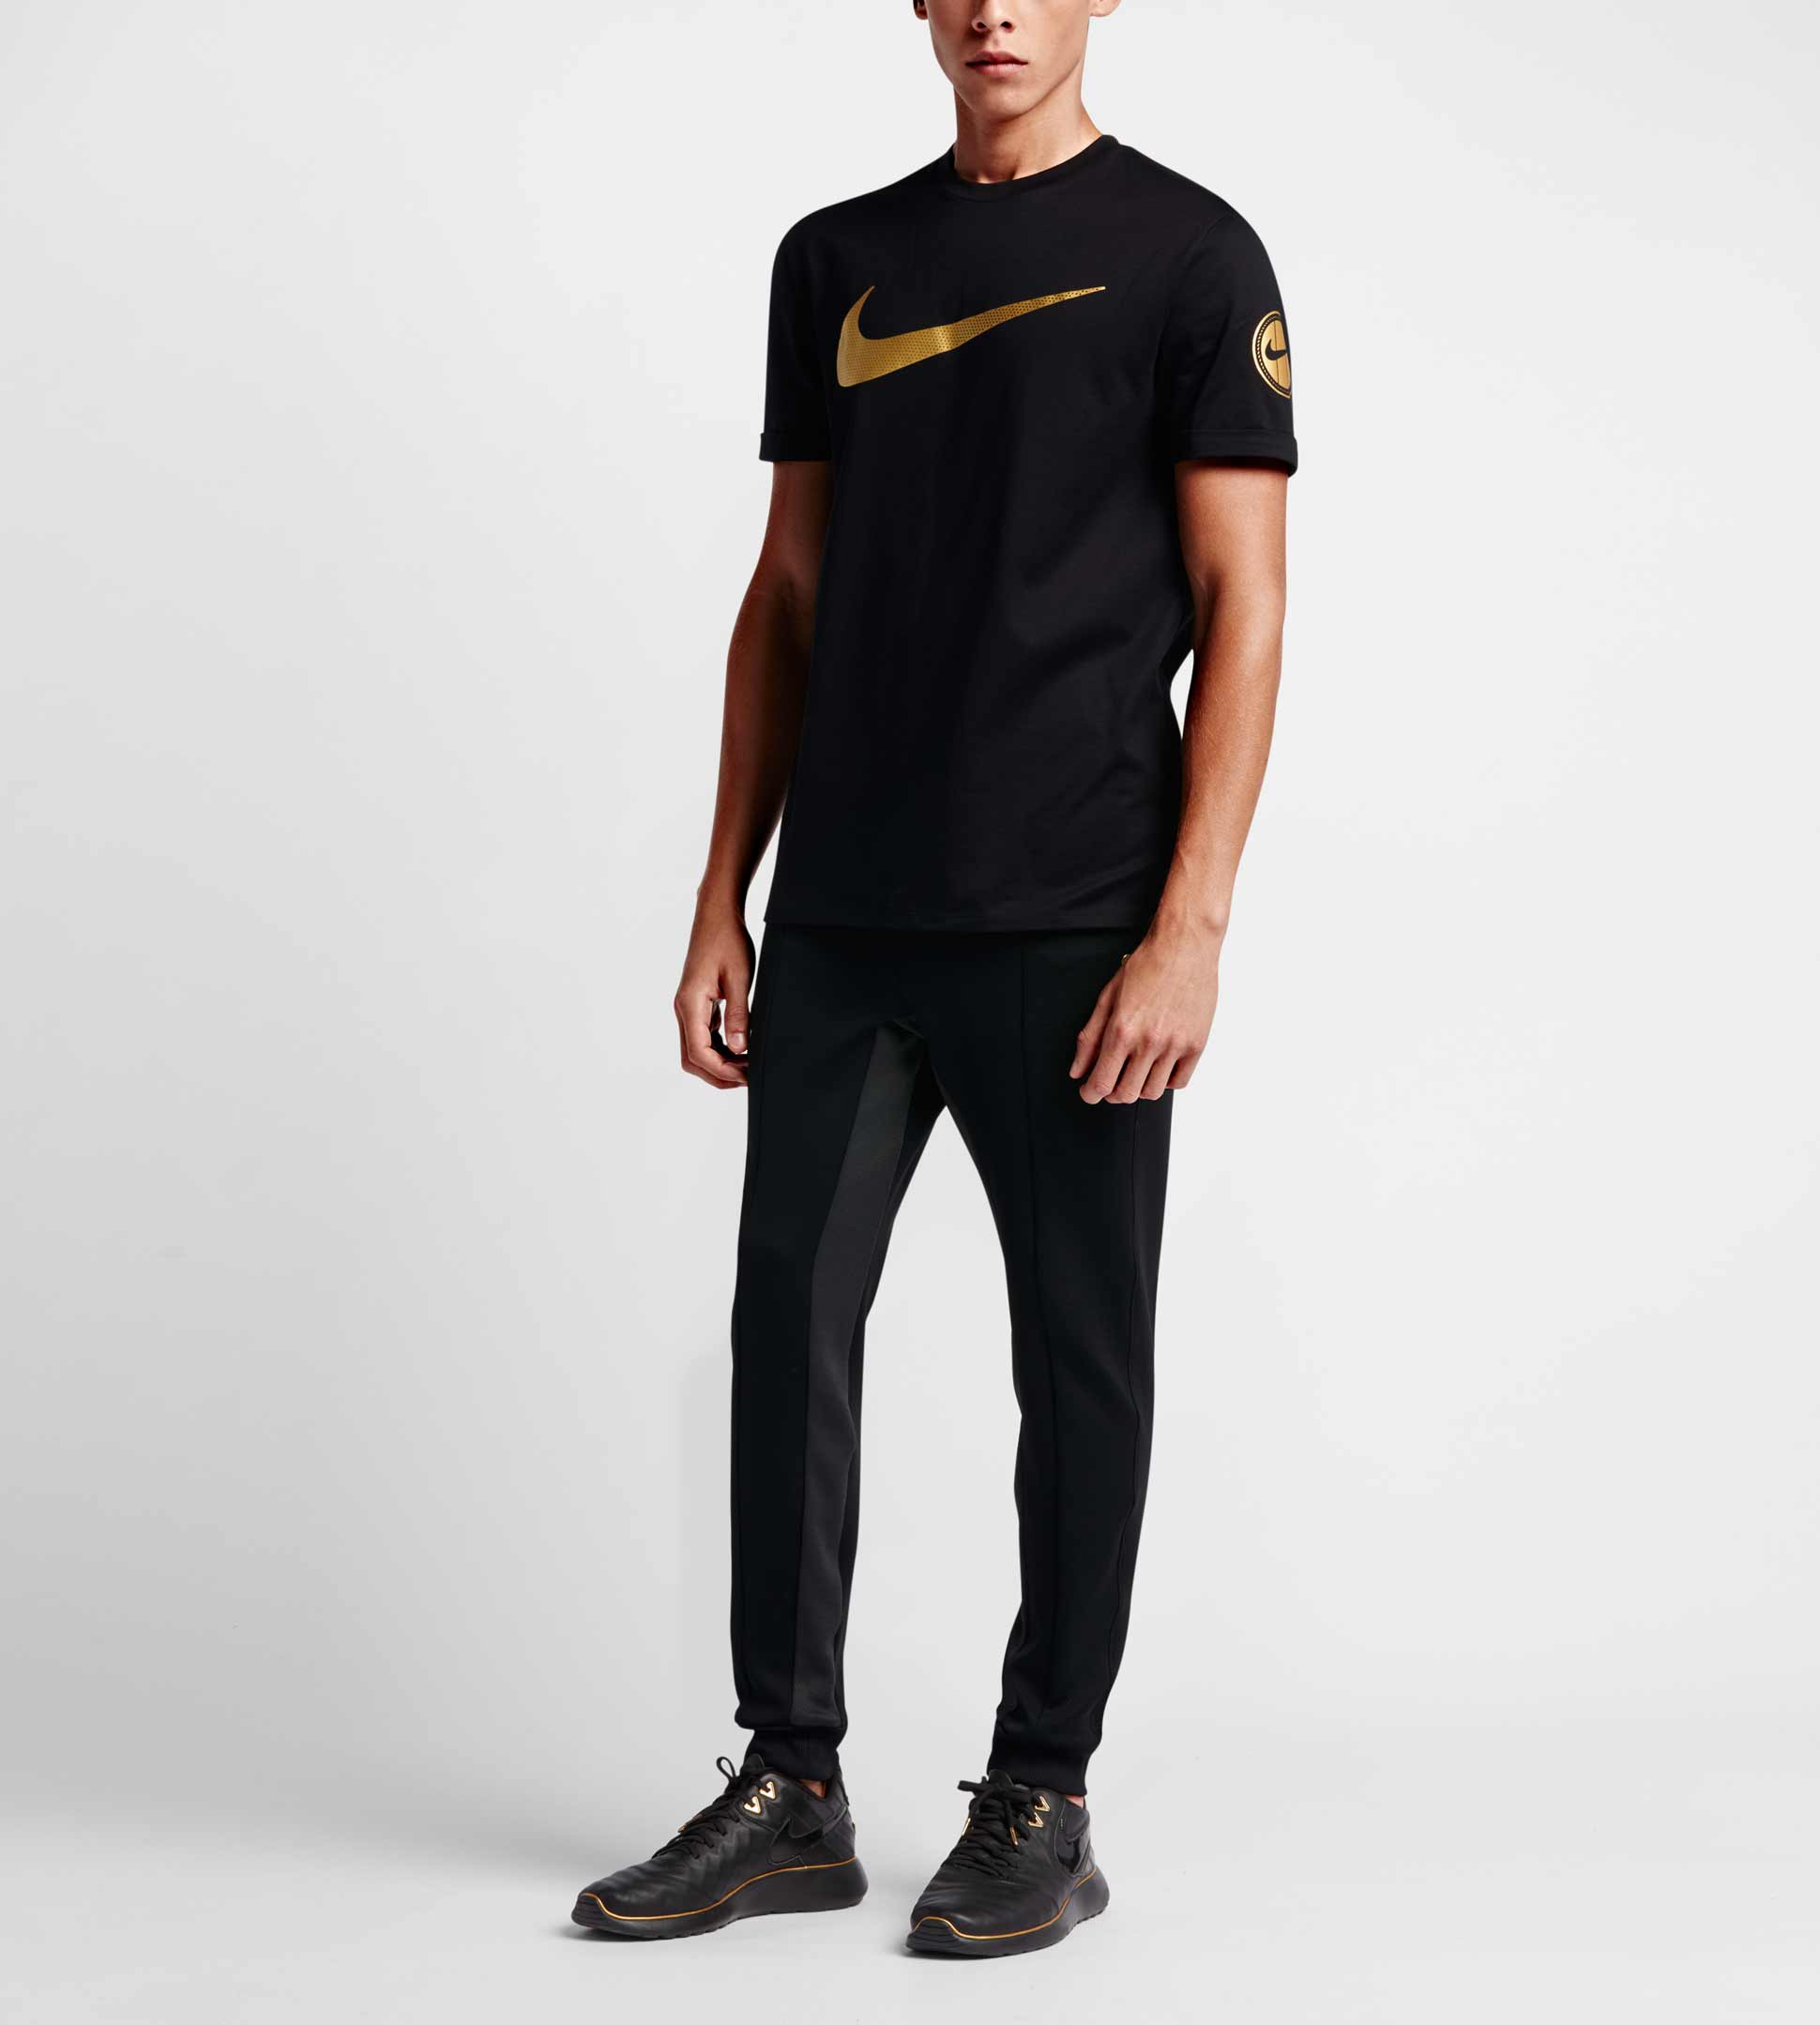 7efbc12d8 NikeLab x Olivier Rousteing  Football Nouveau Collection - SoccerBible.